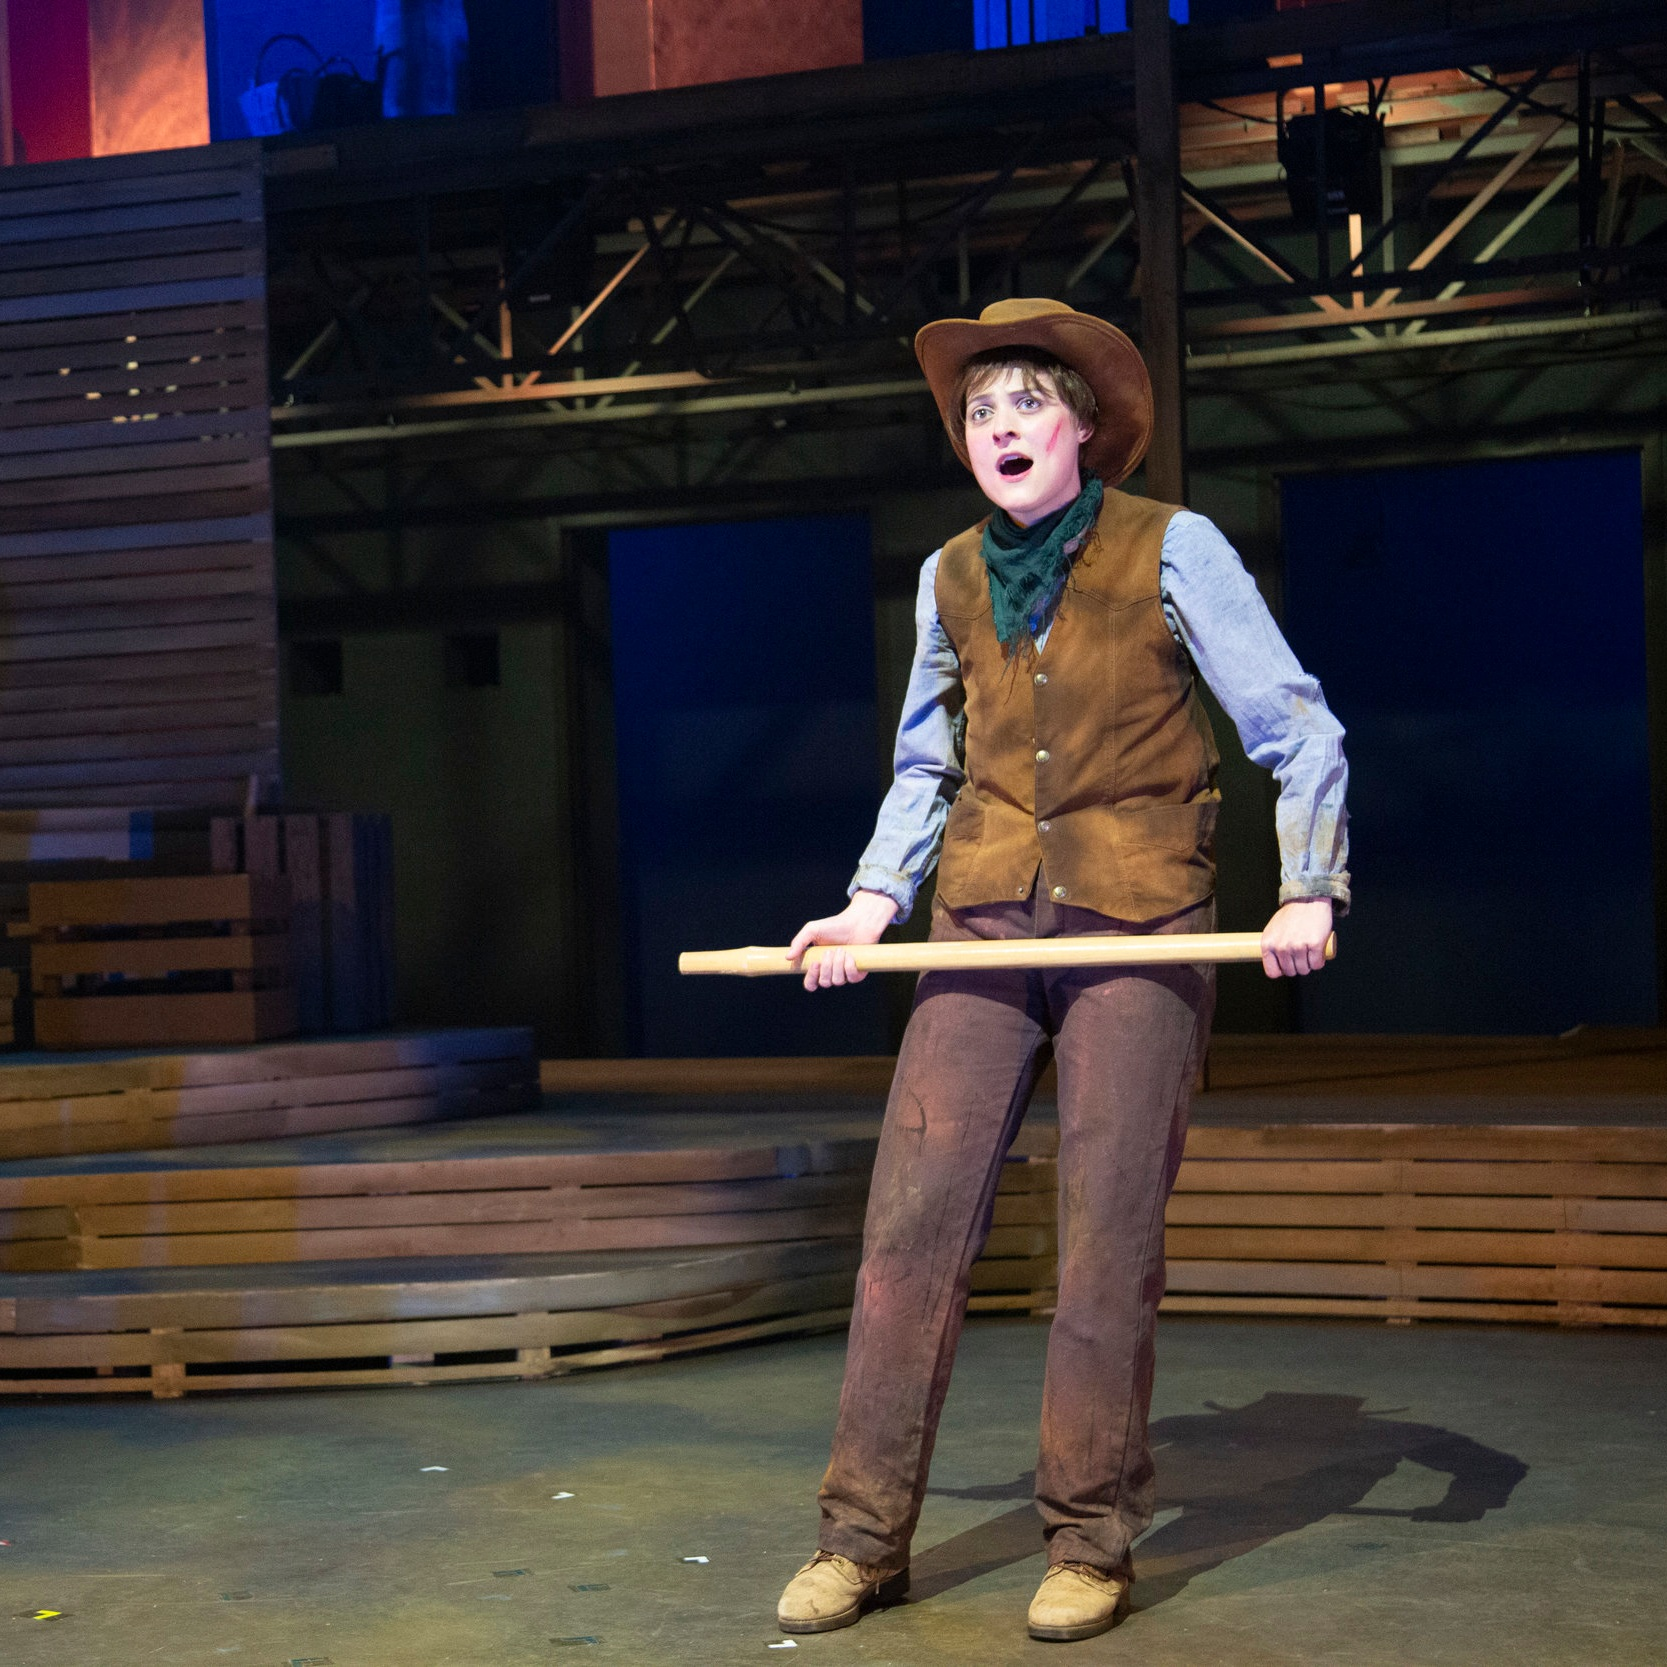 THE BALLAD OF LITTLE JOMusic by Mike ReidLyrics by Sarah Schlesinger Book by Mike Reid, Sarah Schlesinger, and John DiasWaterTower Theatre - Directed by Kelsey Leigh ErviMusic Directed by Vonda K. BowlingChoreographed by Joshua L. PeughScenic Design by Clare Floyd DeVriesLighting Design by Aaron JohansenCostume Design by Amy Pedigo-OttoSound Design by Mark HowardPhotos by Jason Anderson